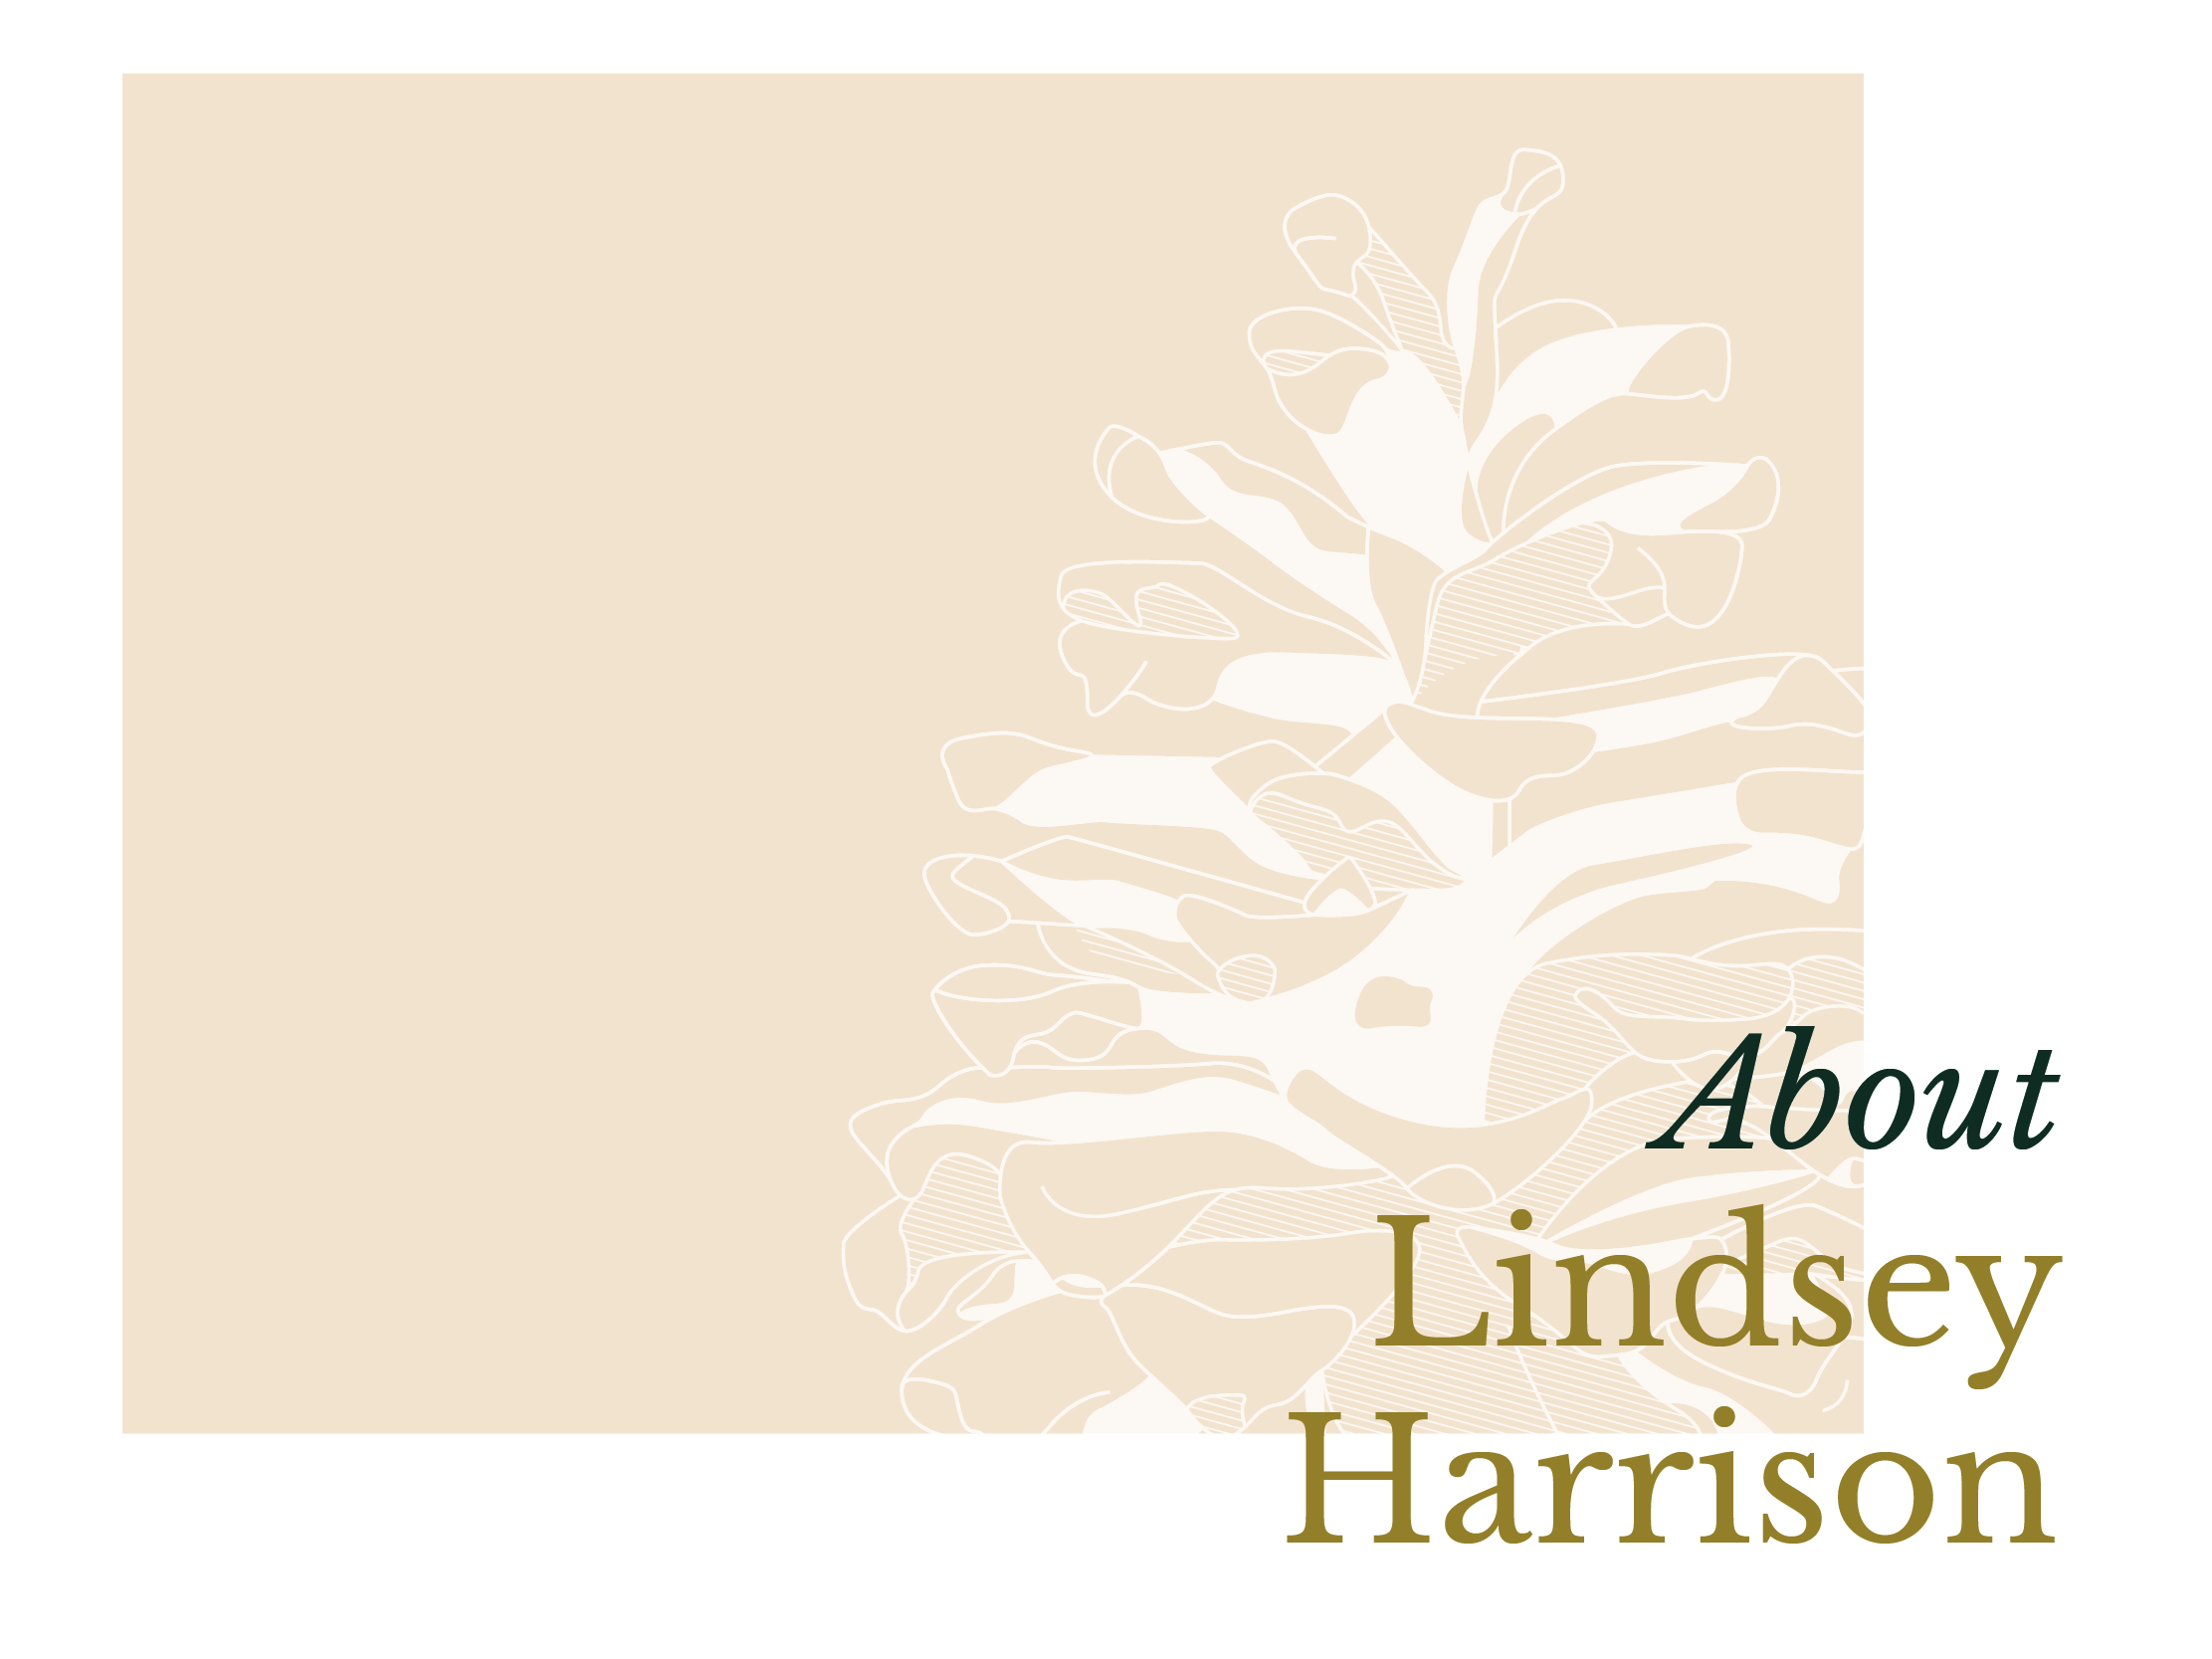 The Simple Act of Attending Daily Mass - Letter from Lindsey Harrison